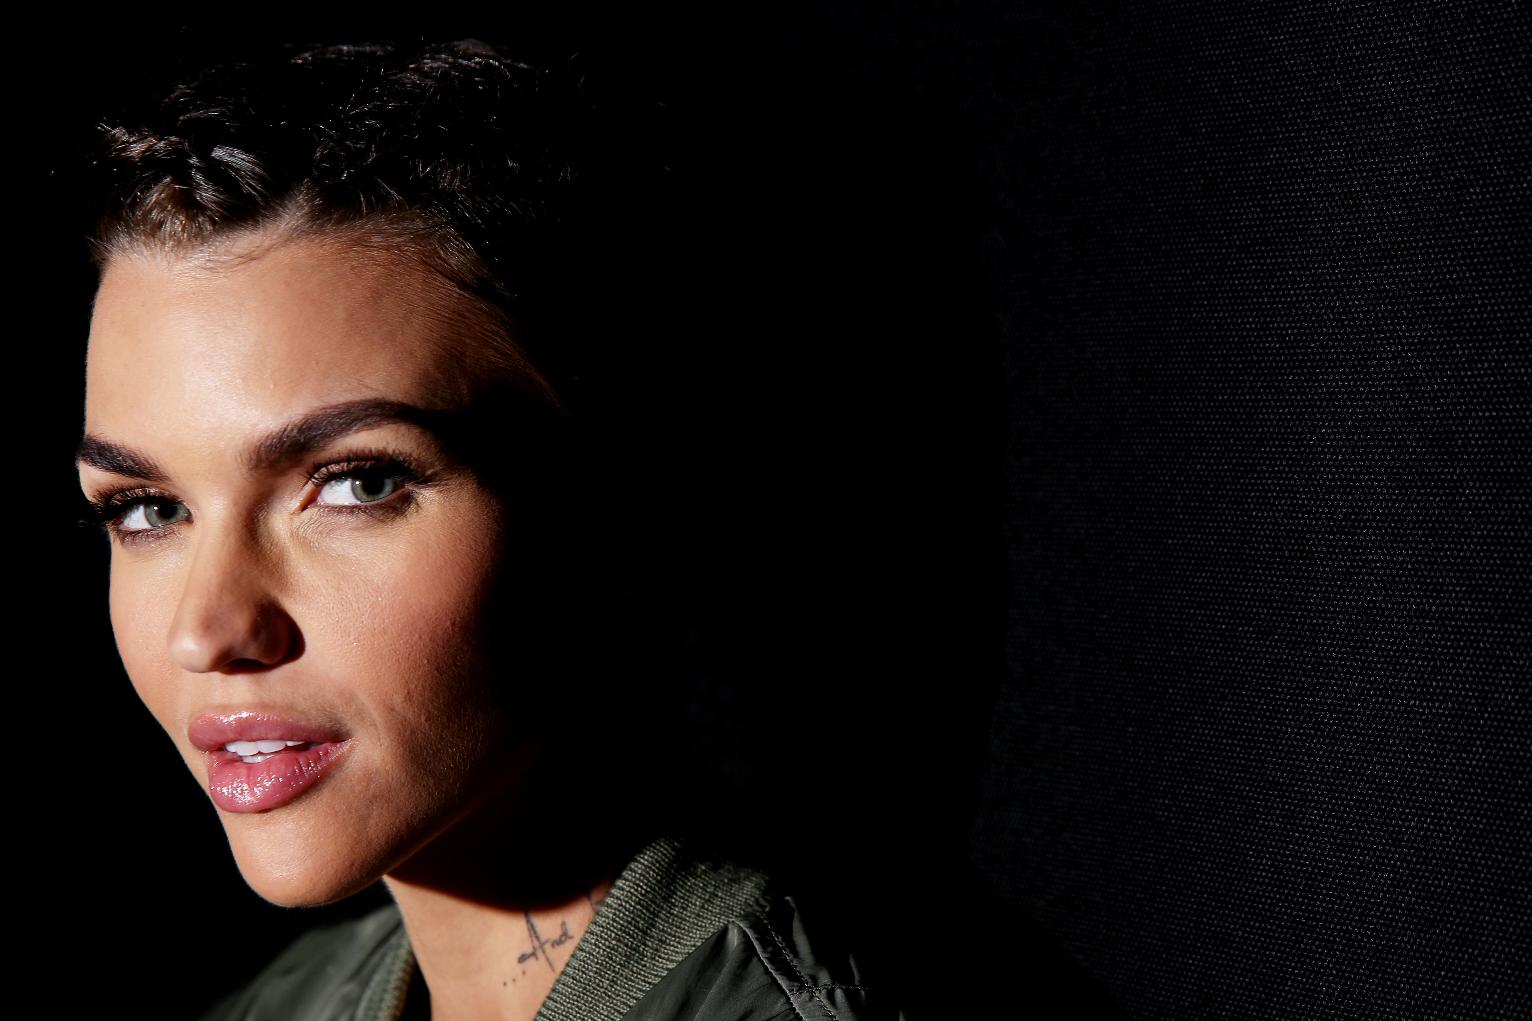 Ruby Rose Before Transition: Germany: Nearly 1.1 Million Migrants Arrived Last Year